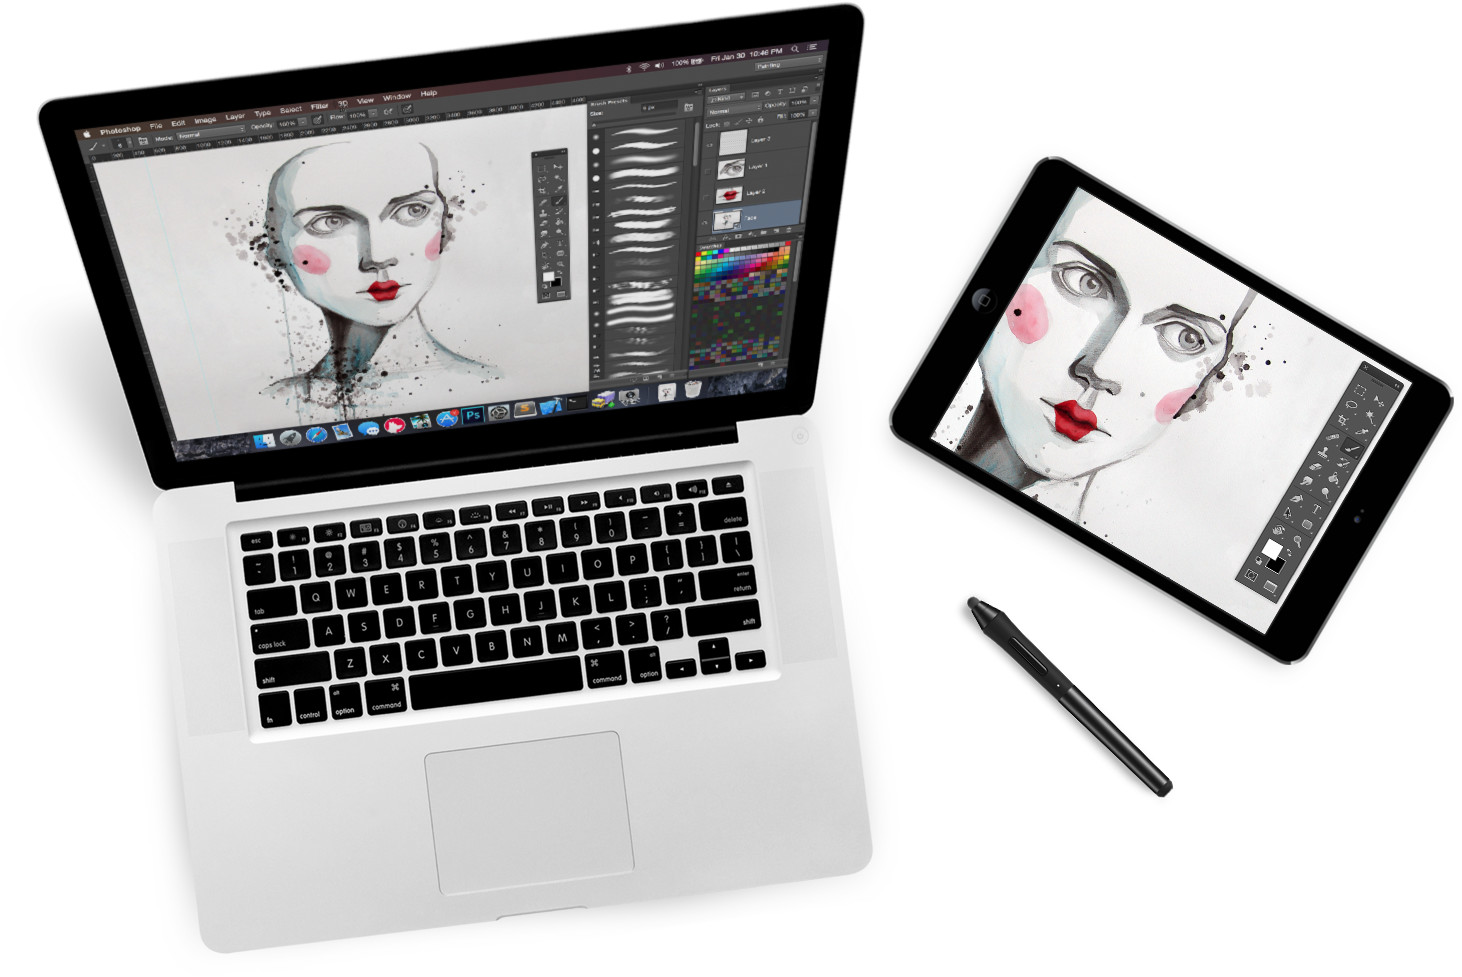 Easy connect to computers drawing tablet